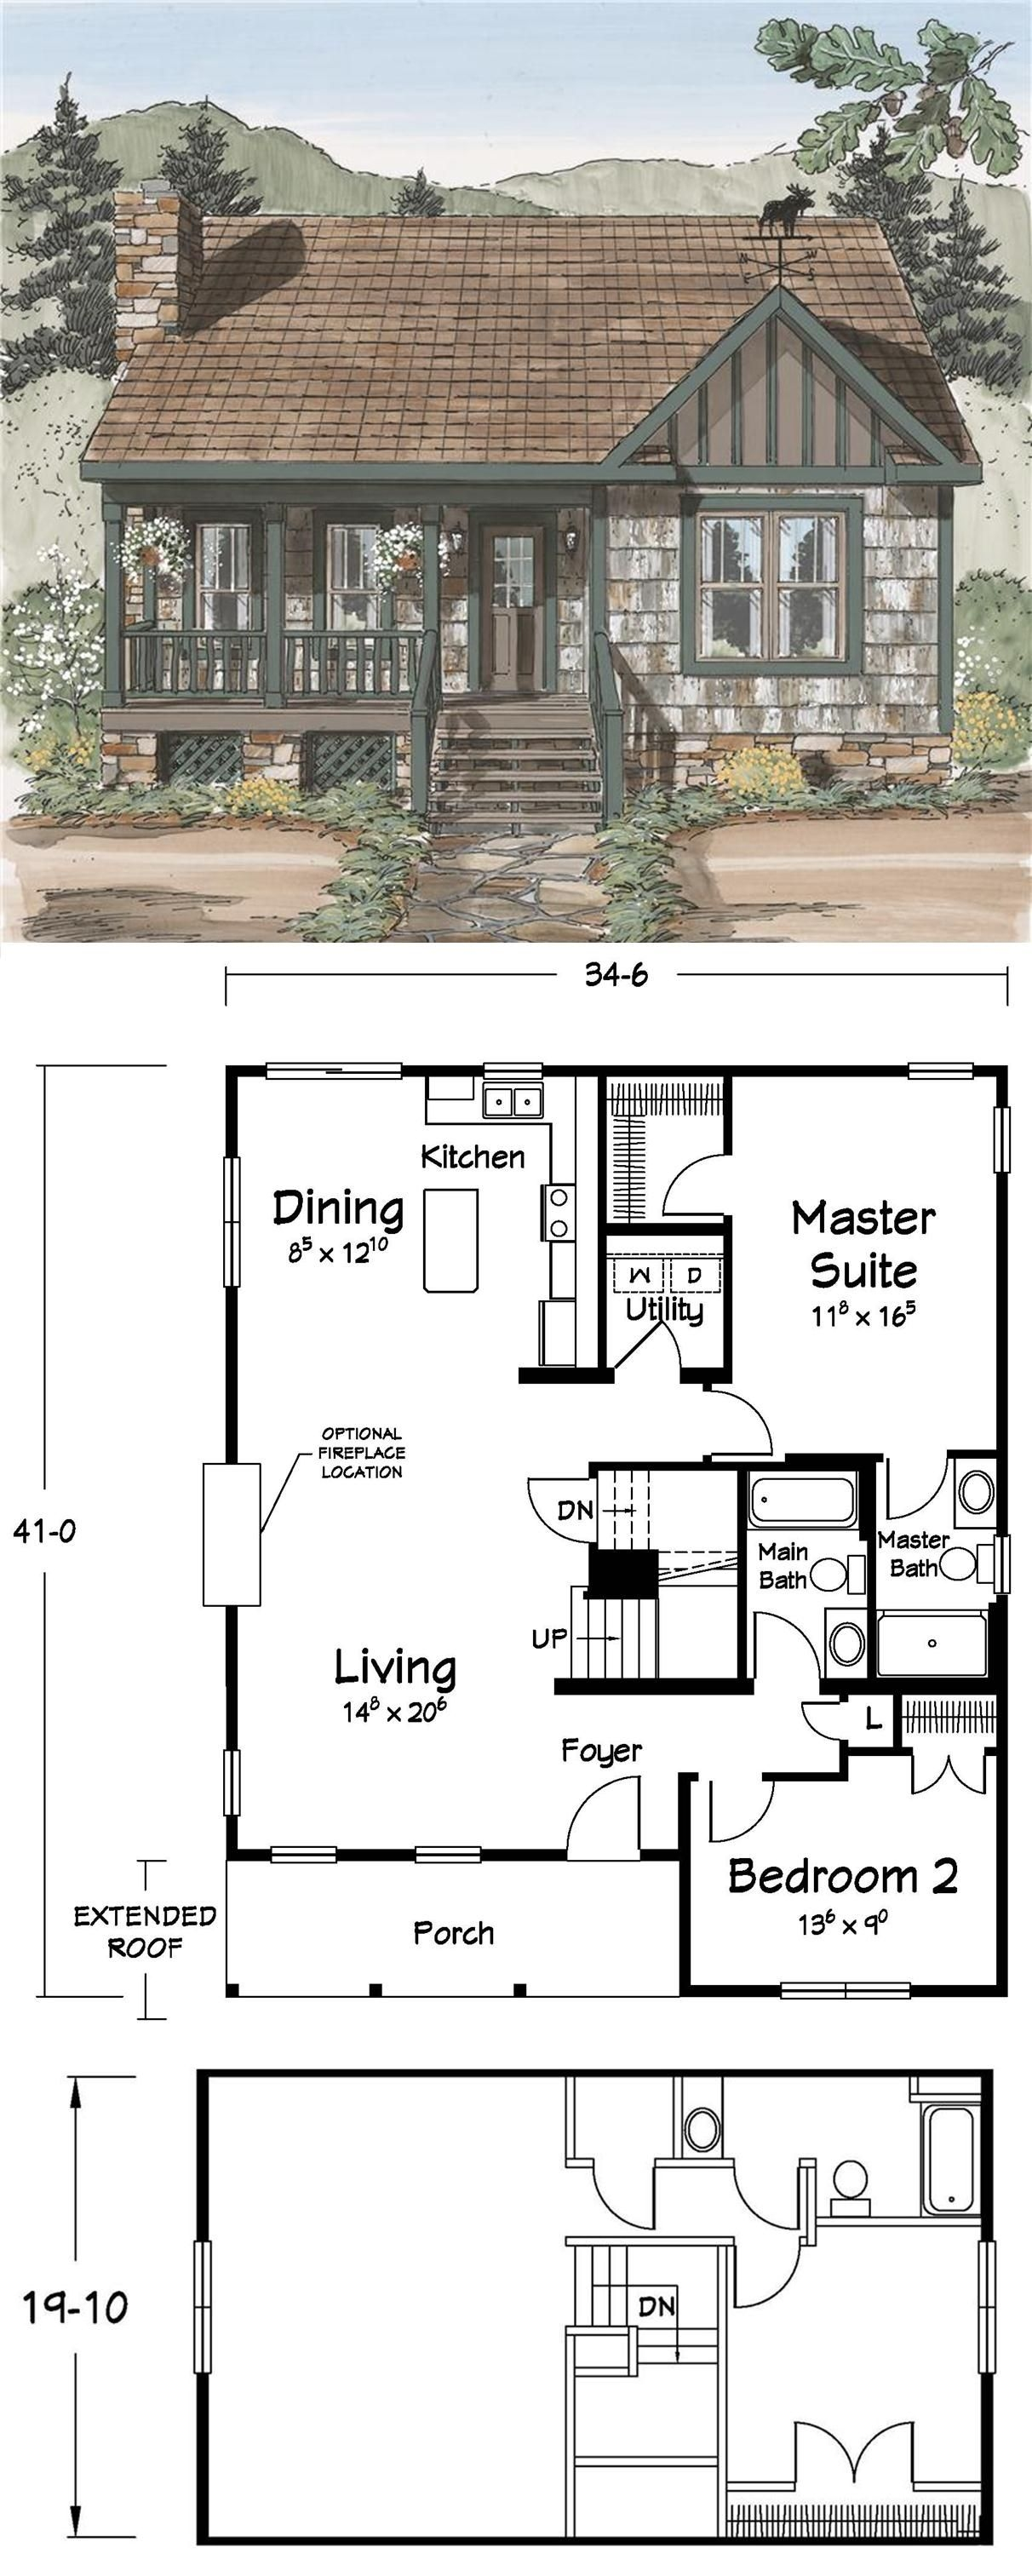 Rustic Mountain House Plans with Walkout Basement Best Of Cute Tiny Living Floor Plans Cabins & Cottages